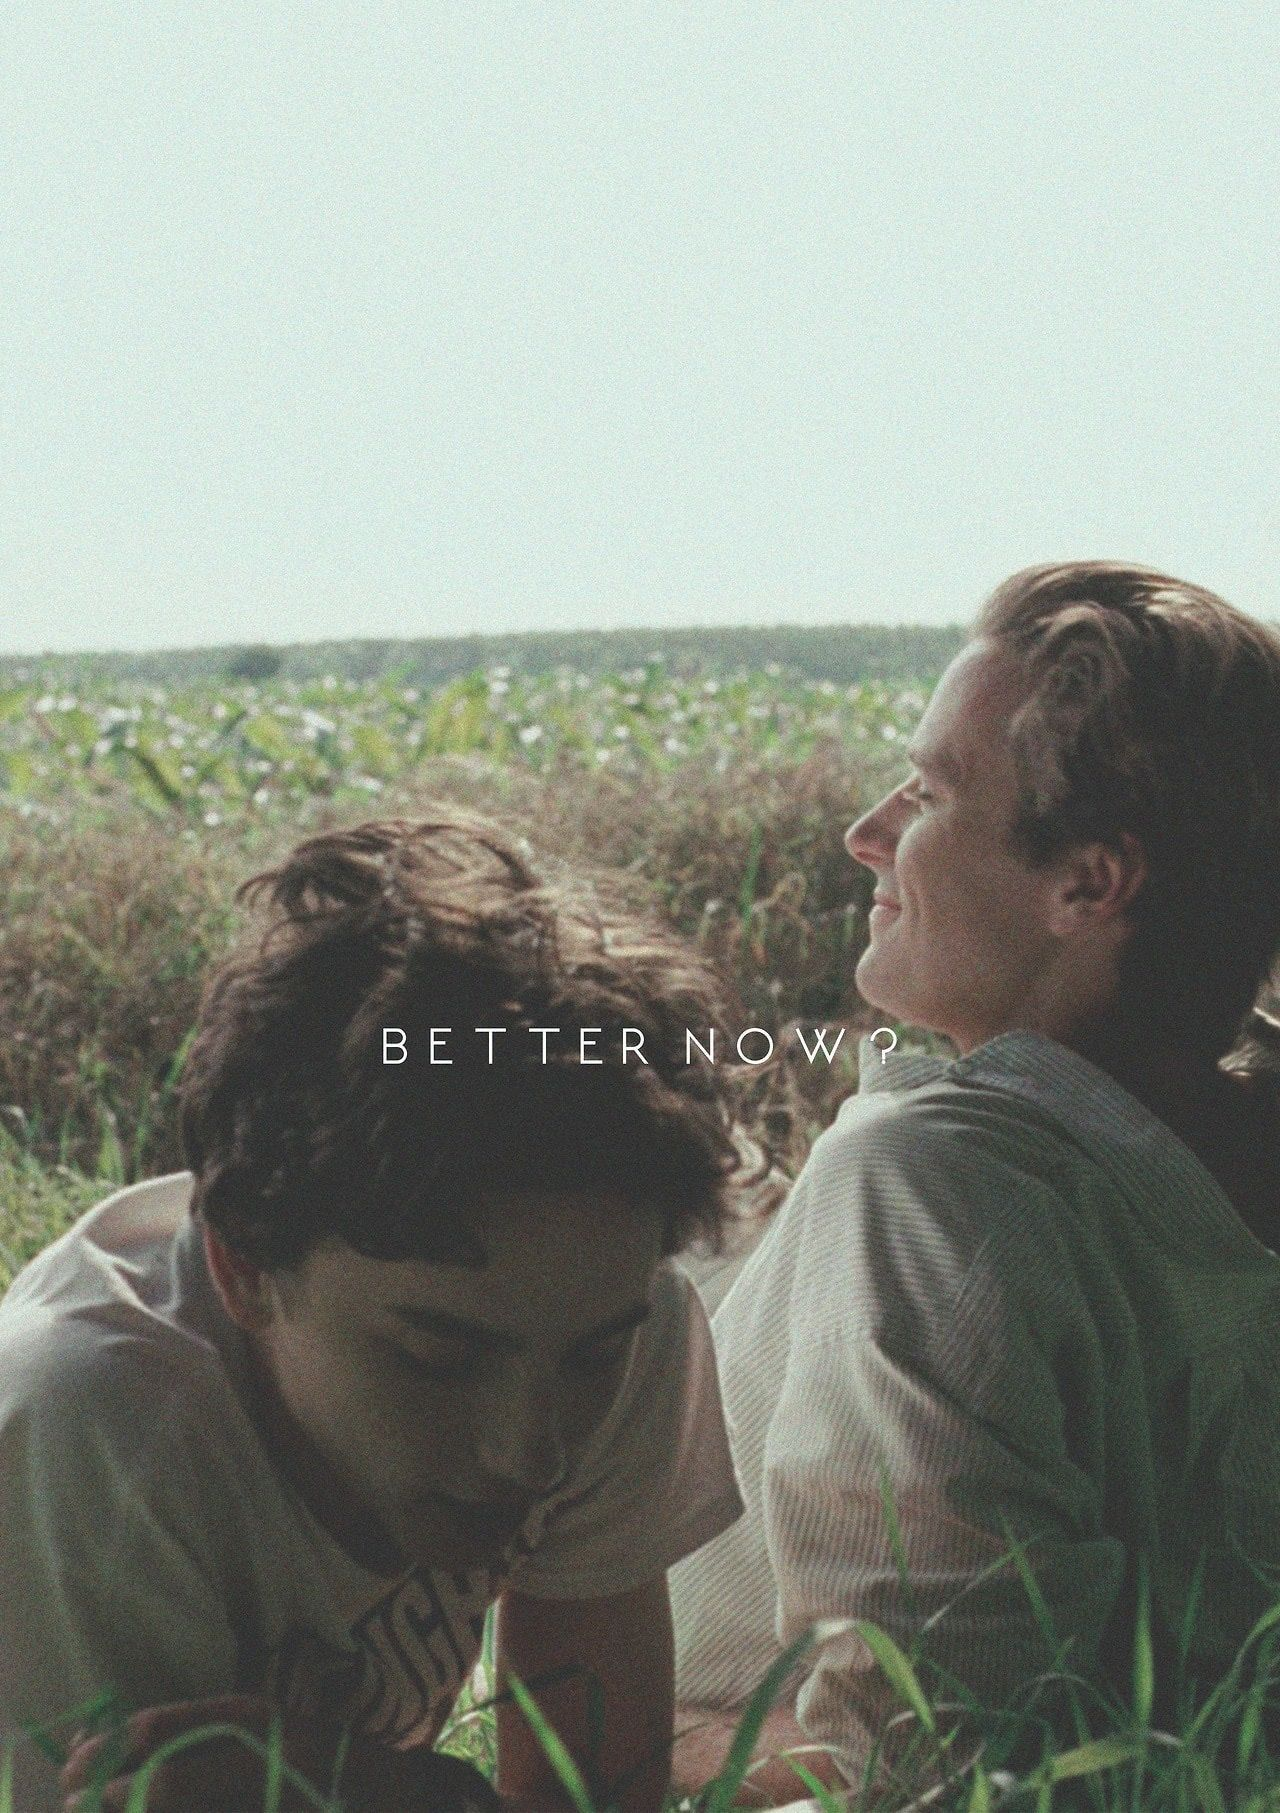 Pin By Mac Nnutt On Call Me By Your Name Pinterest Movie Films